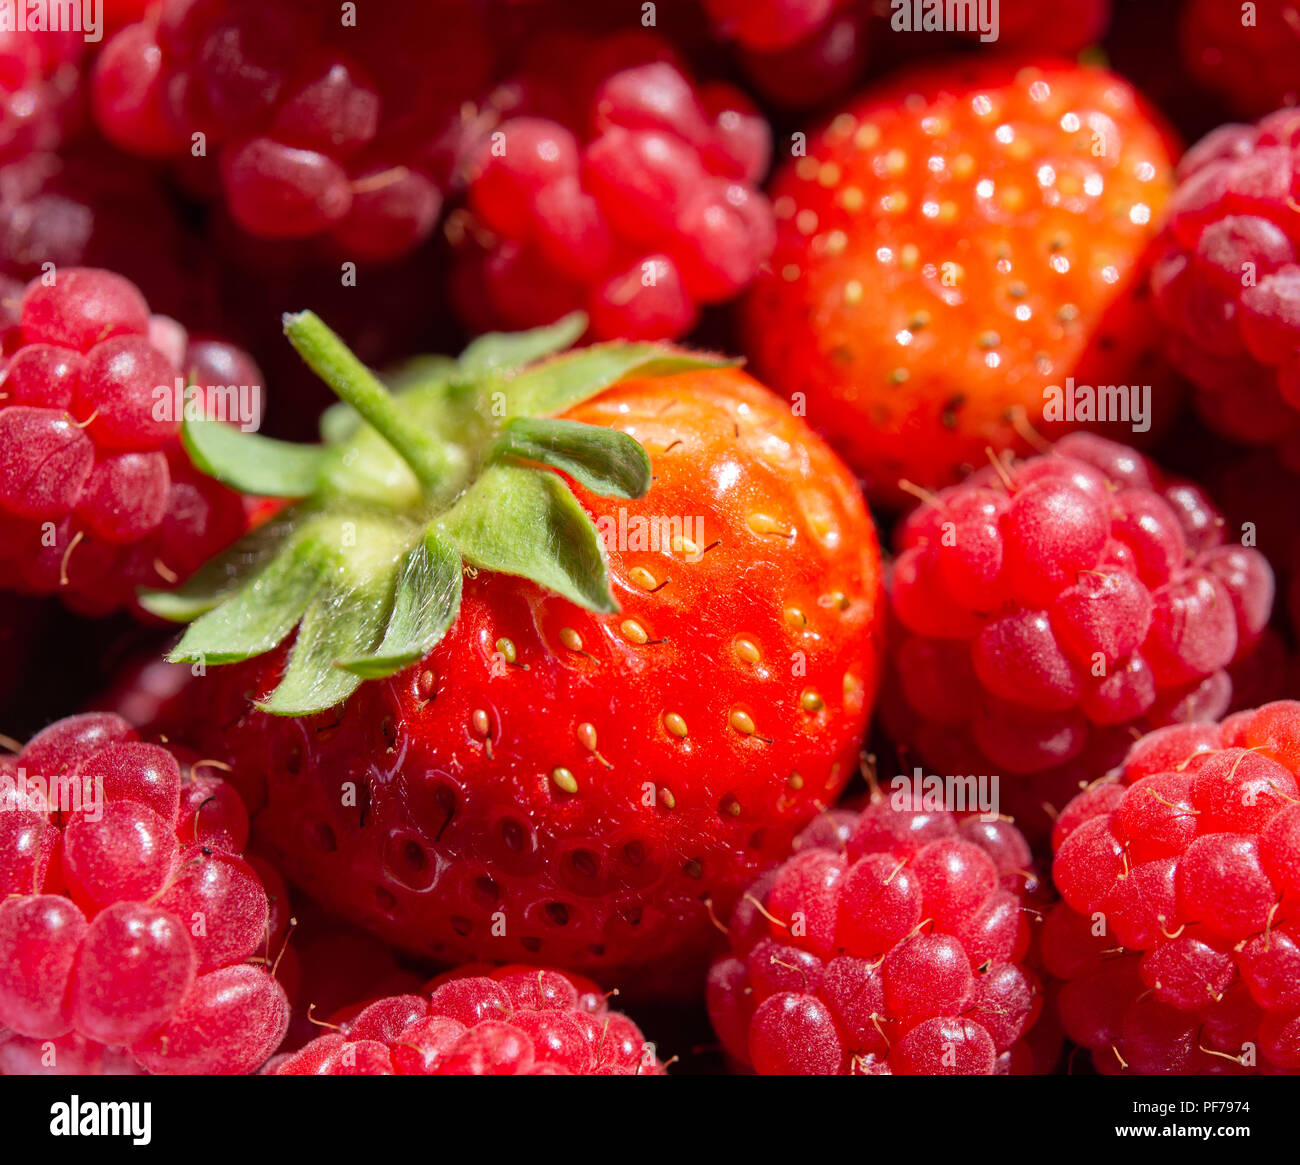 Bright and colourful summer strawberries and raspberries - Stock Image